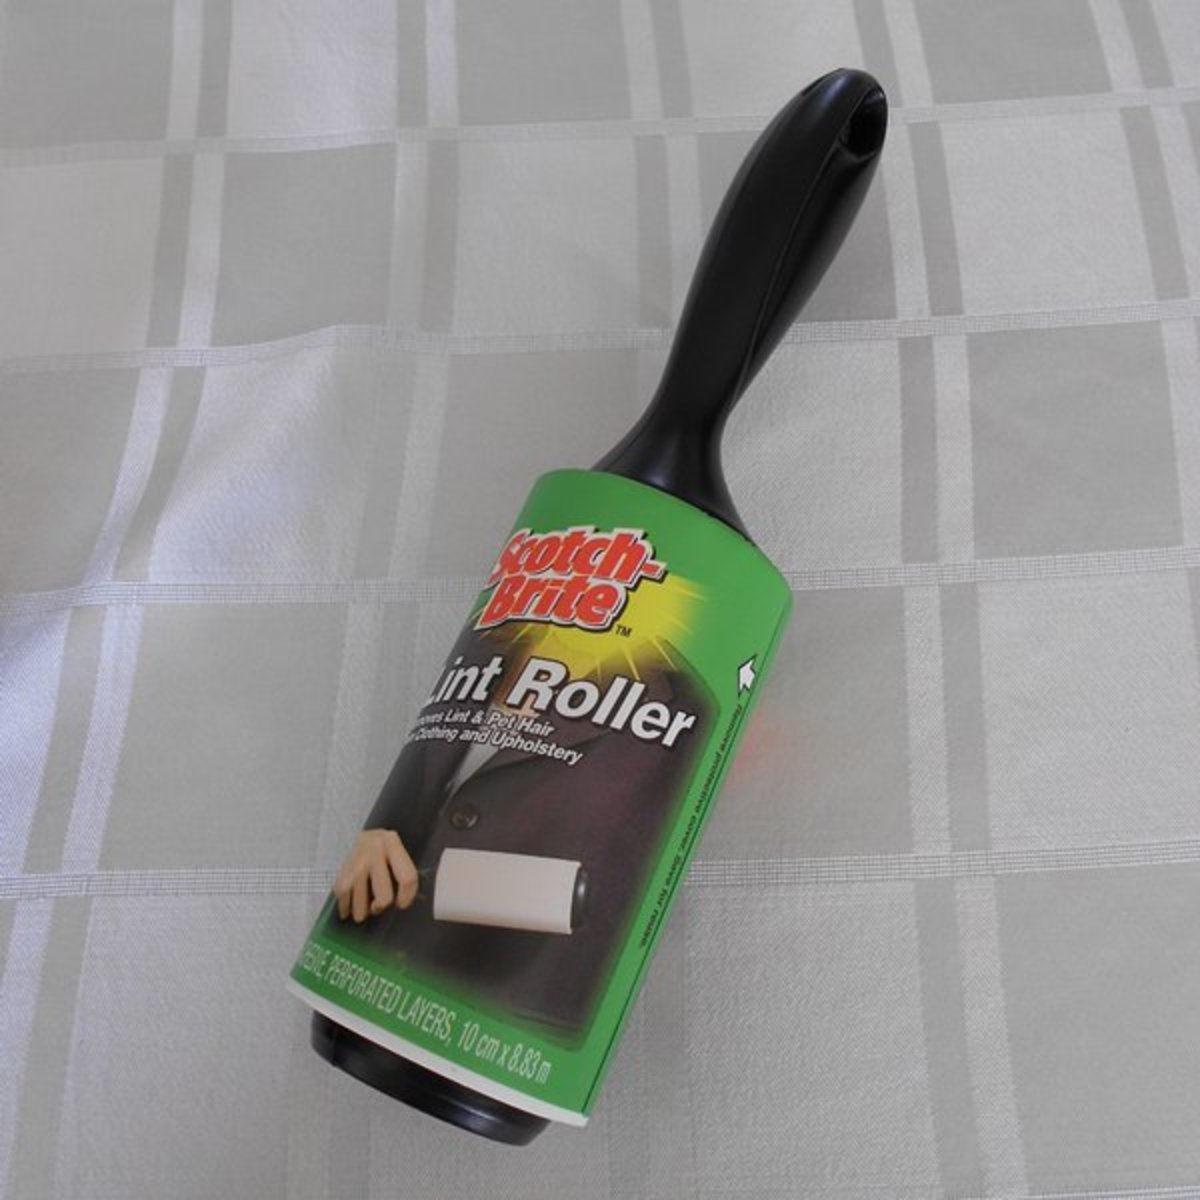 Scotch-Brite Lint rollers are great for removing hairs from carpet, upholstery and clothing